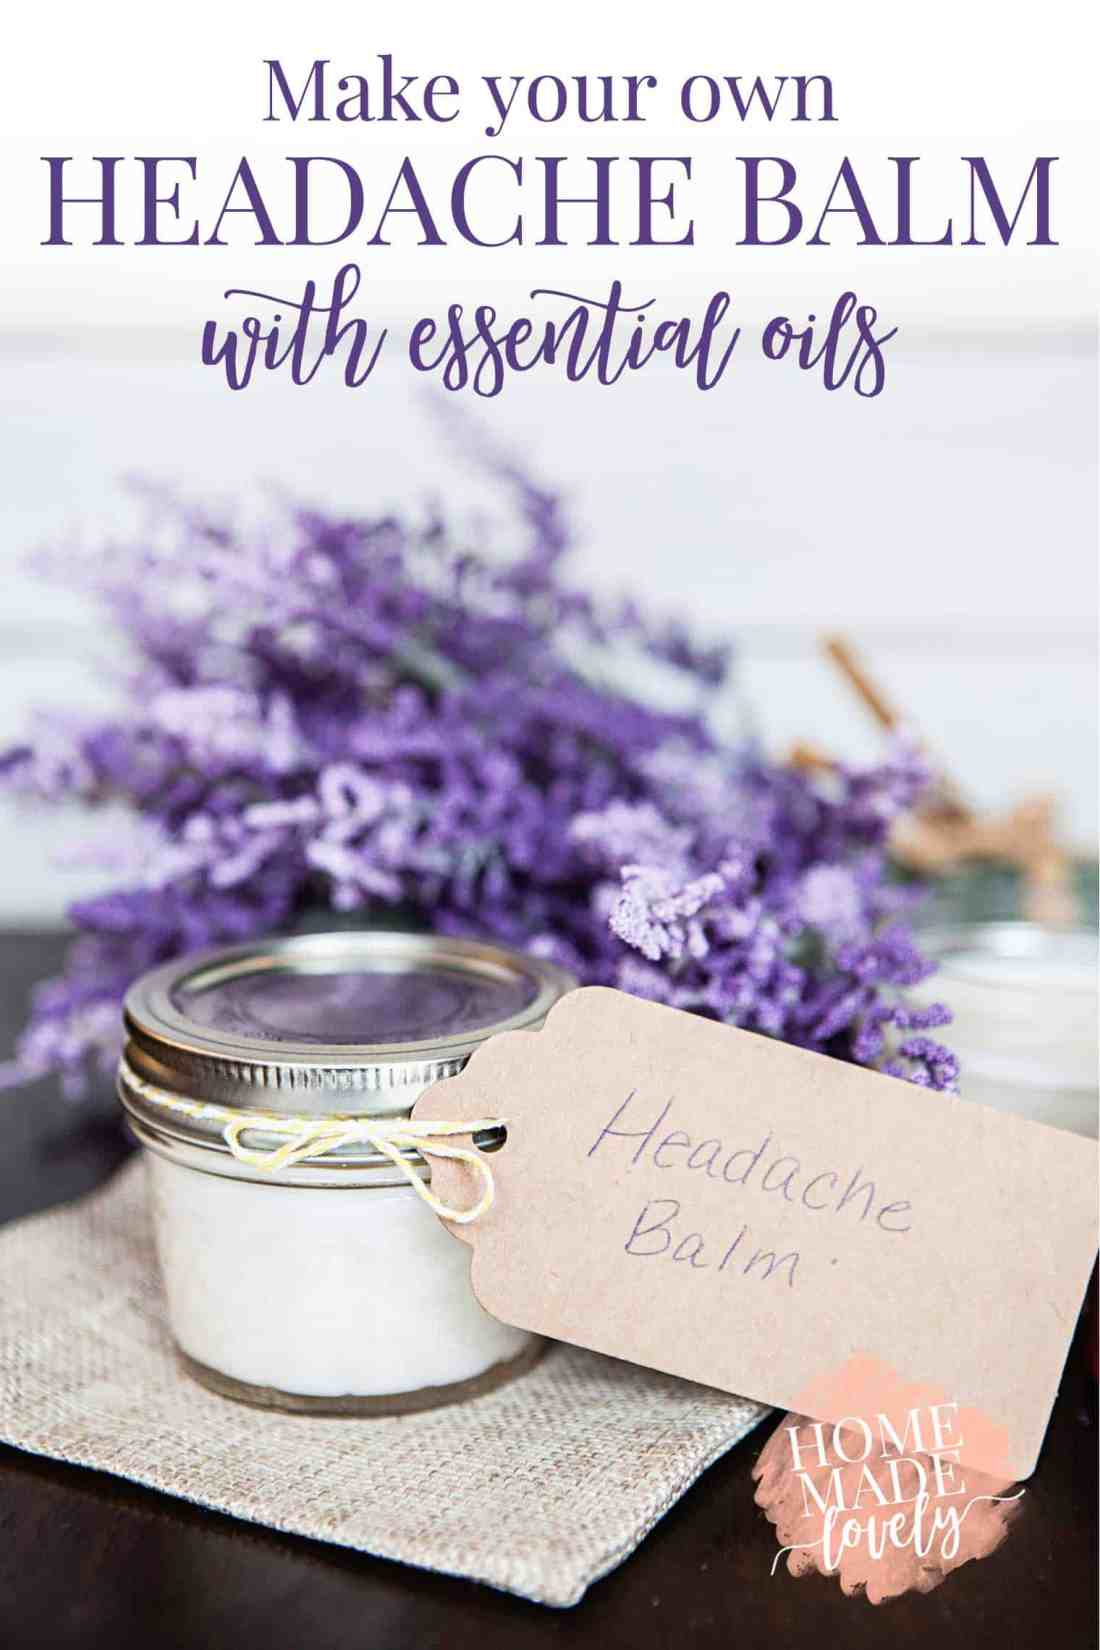 Make your own natural headache balm with essential oils.